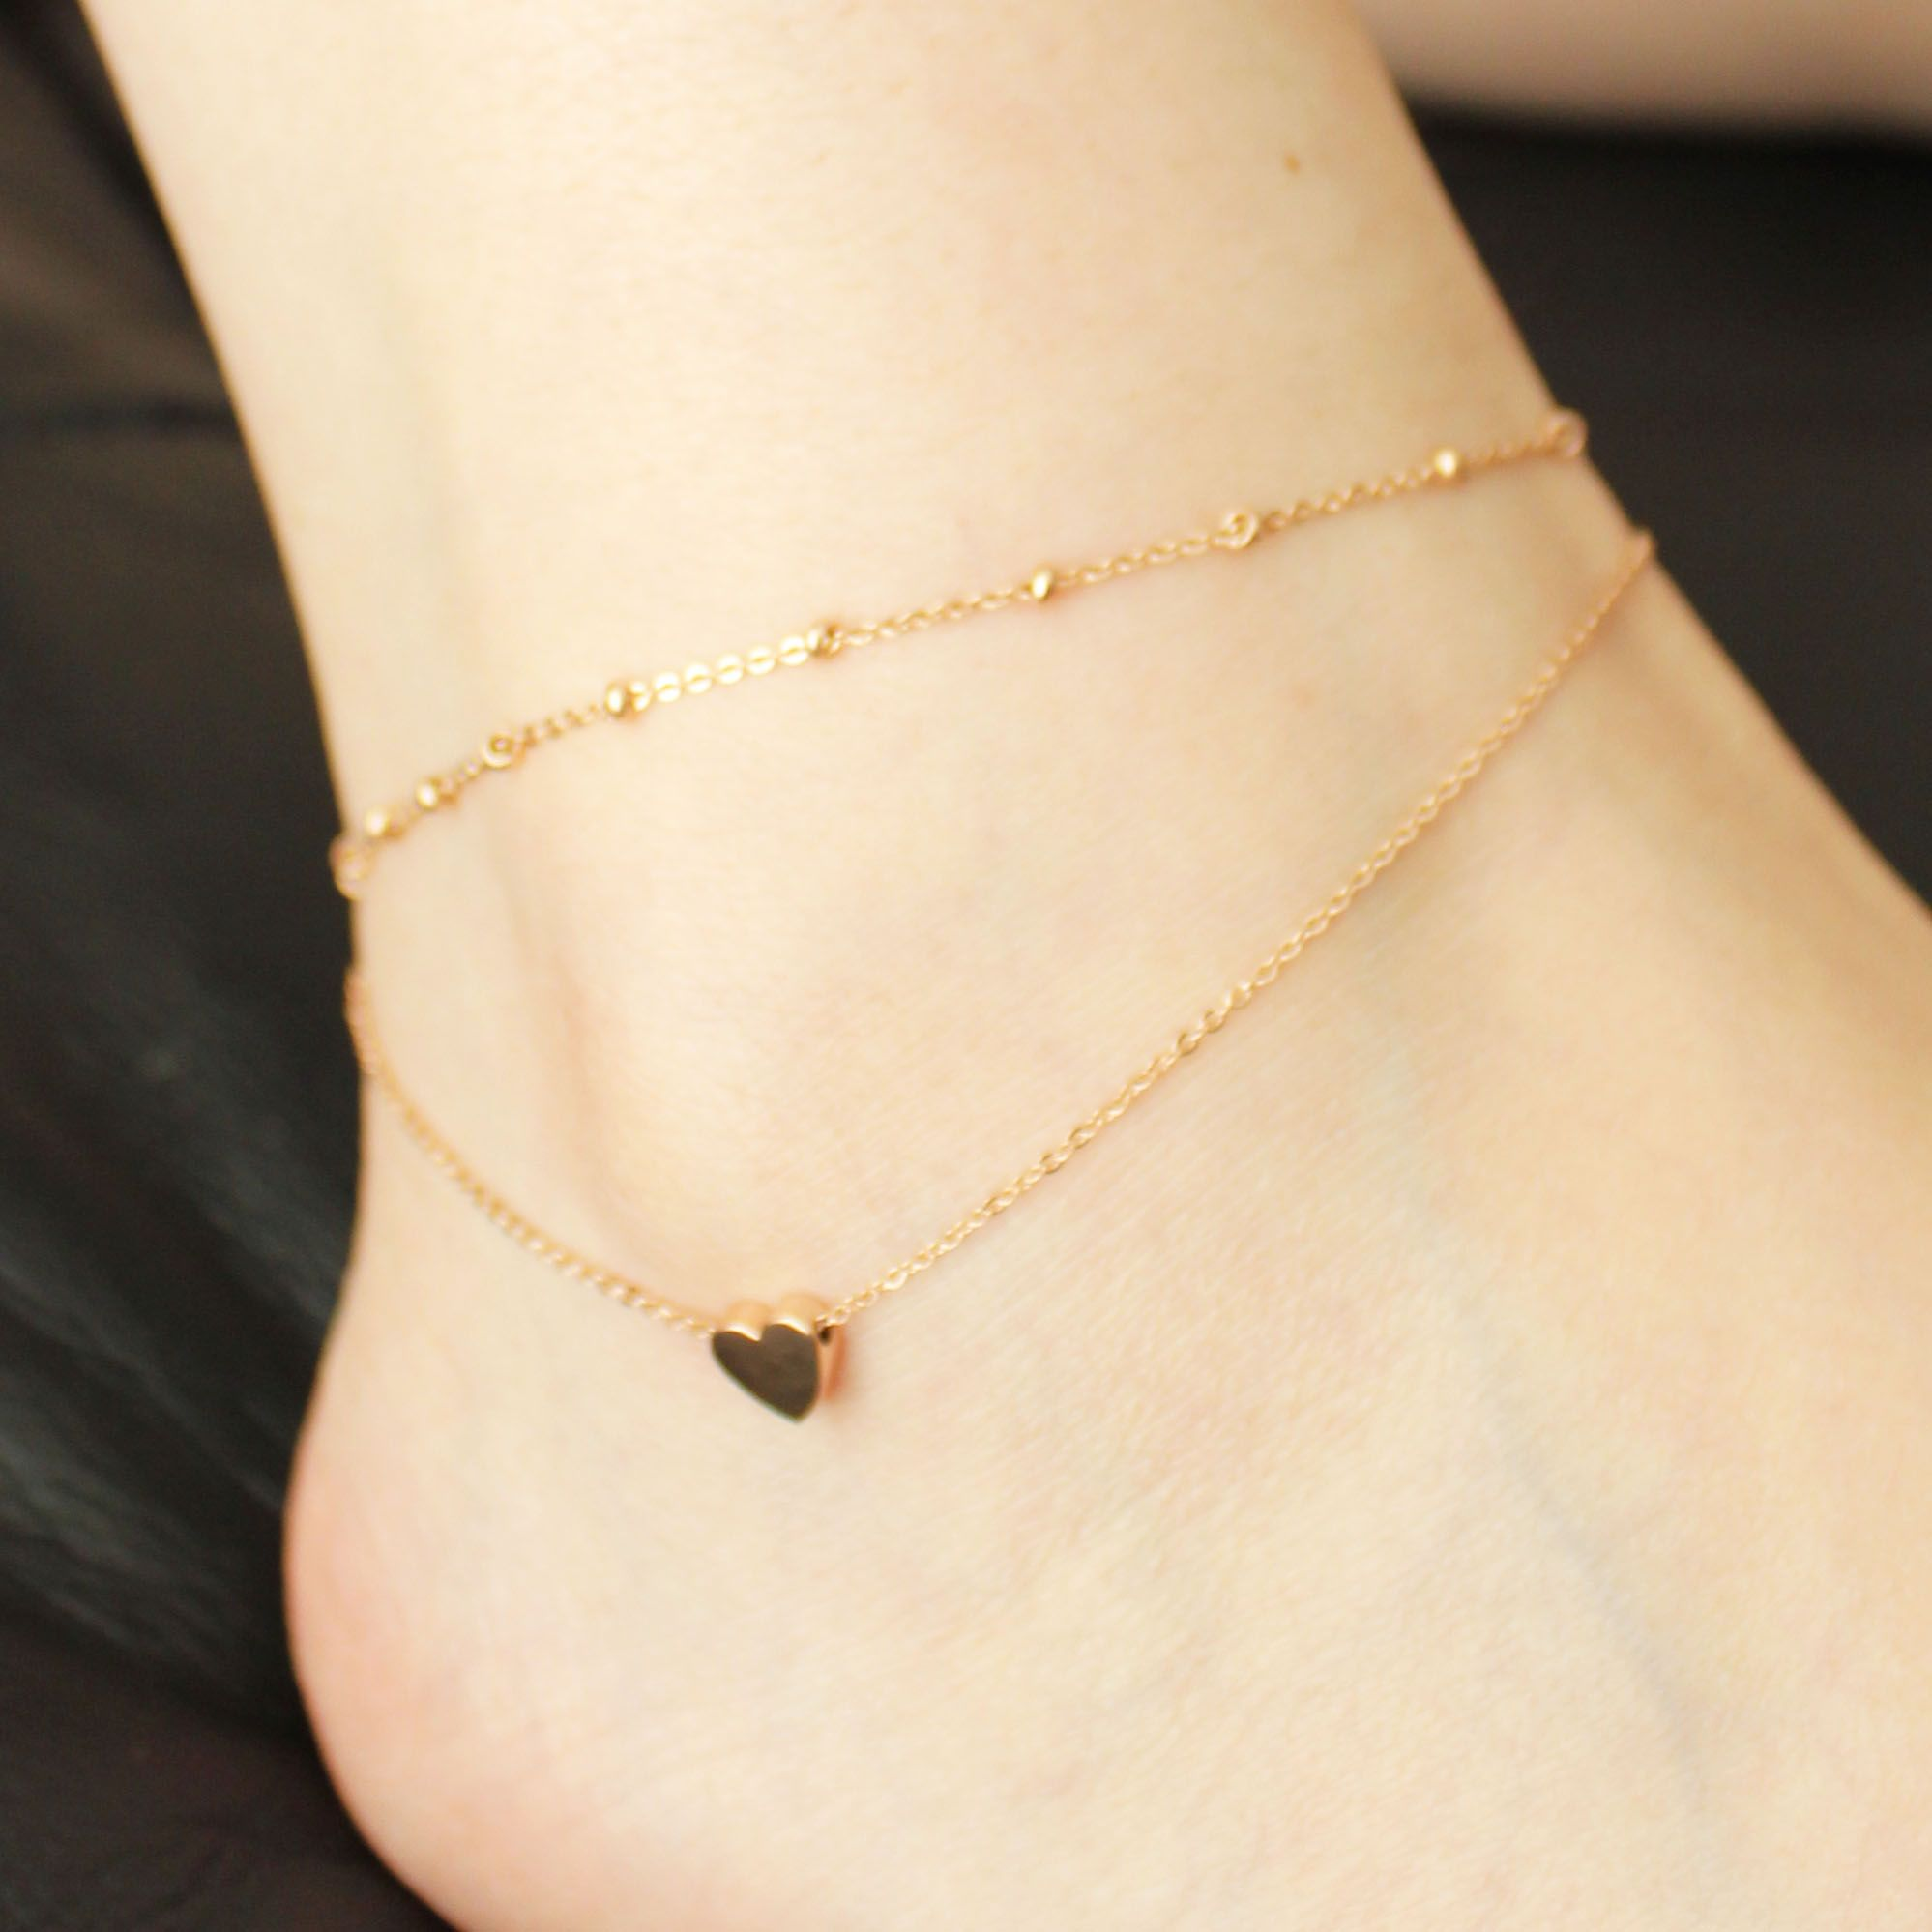 anklets bracelets anklet gold myshoplah women indian ankle girls for new designs womens ladies